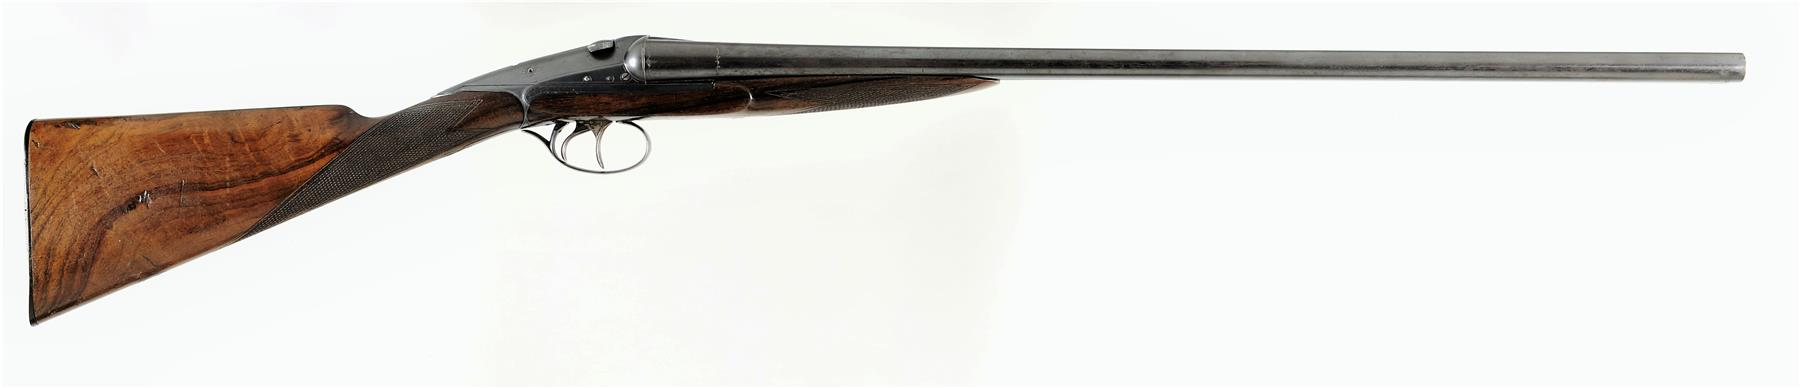 """The reason for the """"between the hands"""" liveliness of the Darne is apparent in this picture. Note the weight concentrated in the action area immediately above and behind the triggers. (Picture courtesy rockislandauction.com)."""